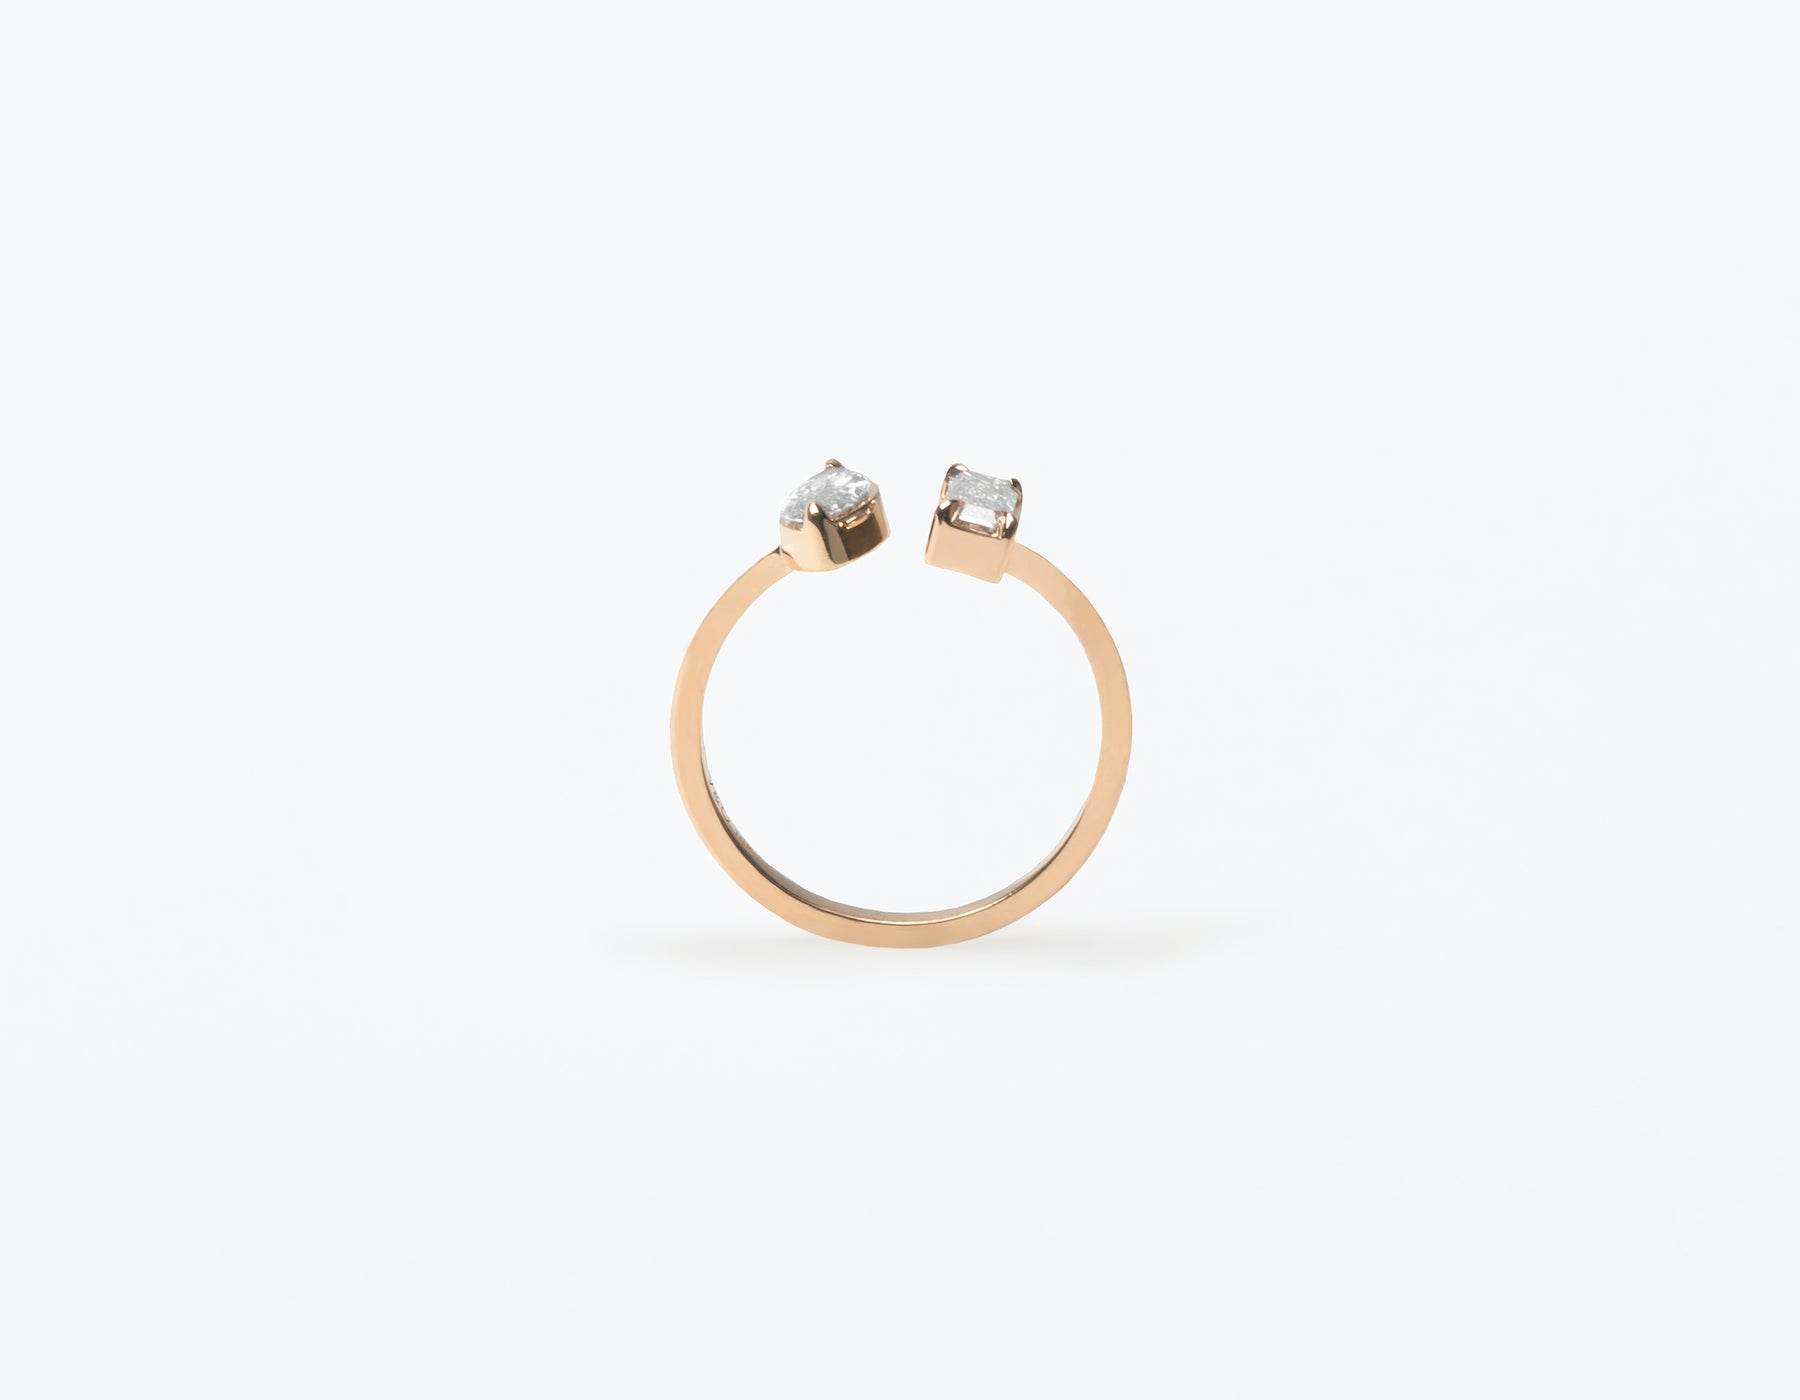 Modern Minimalist 18K solid gold Mix Baguette and Marquise Diamond Cuff Ring Vrai and Oro, 14K Rose Gold